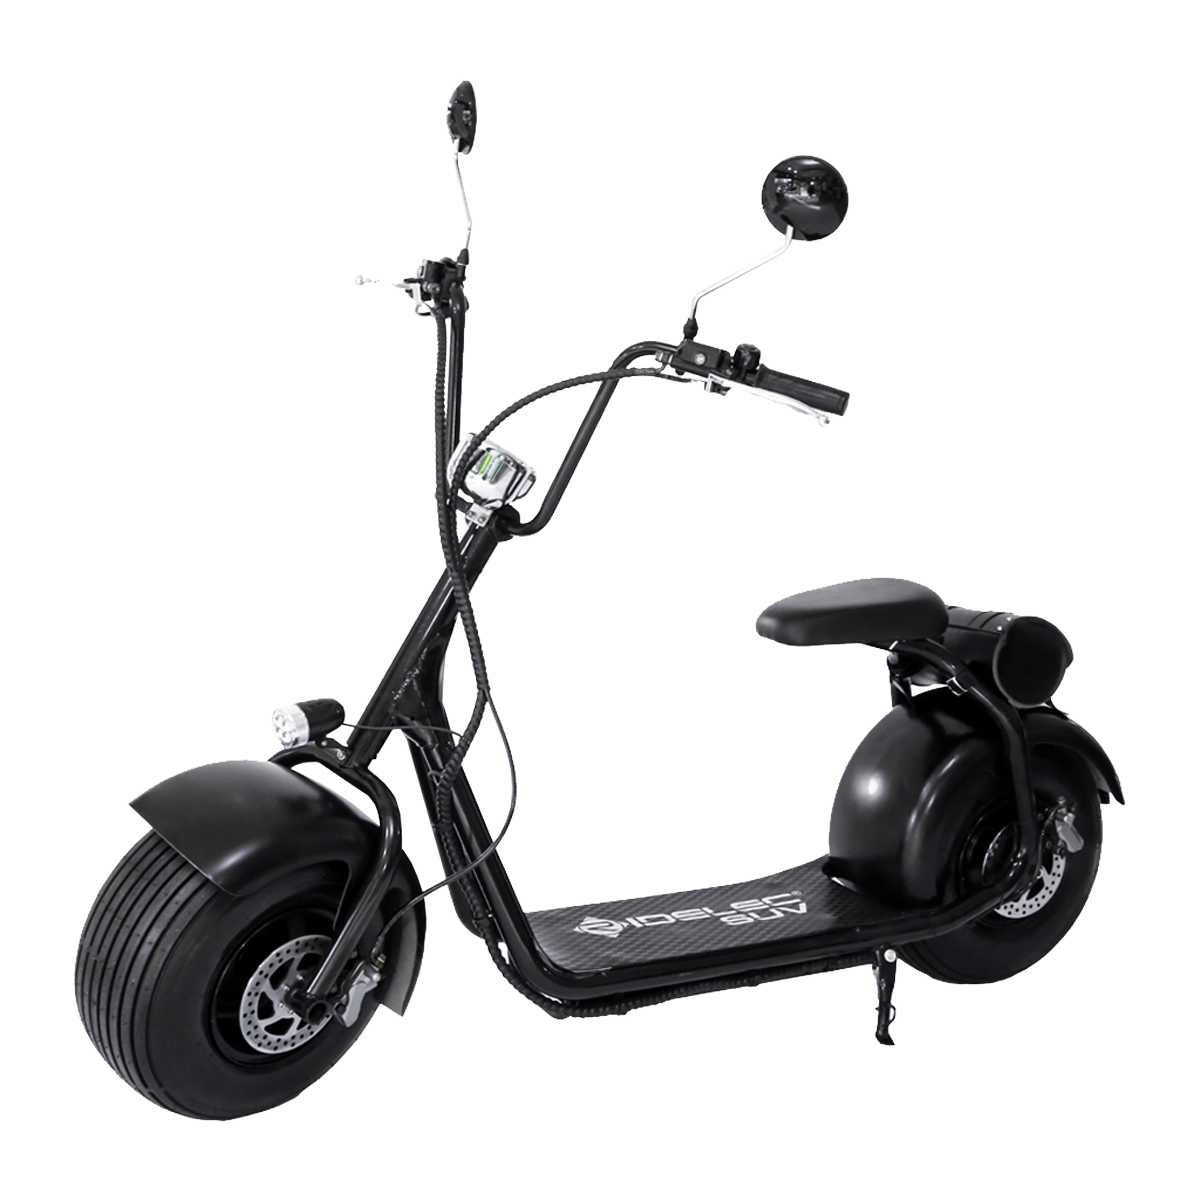 ridelec suv electro scooter 20 km h noir mat scooter l ctrique acheter bas prix. Black Bedroom Furniture Sets. Home Design Ideas